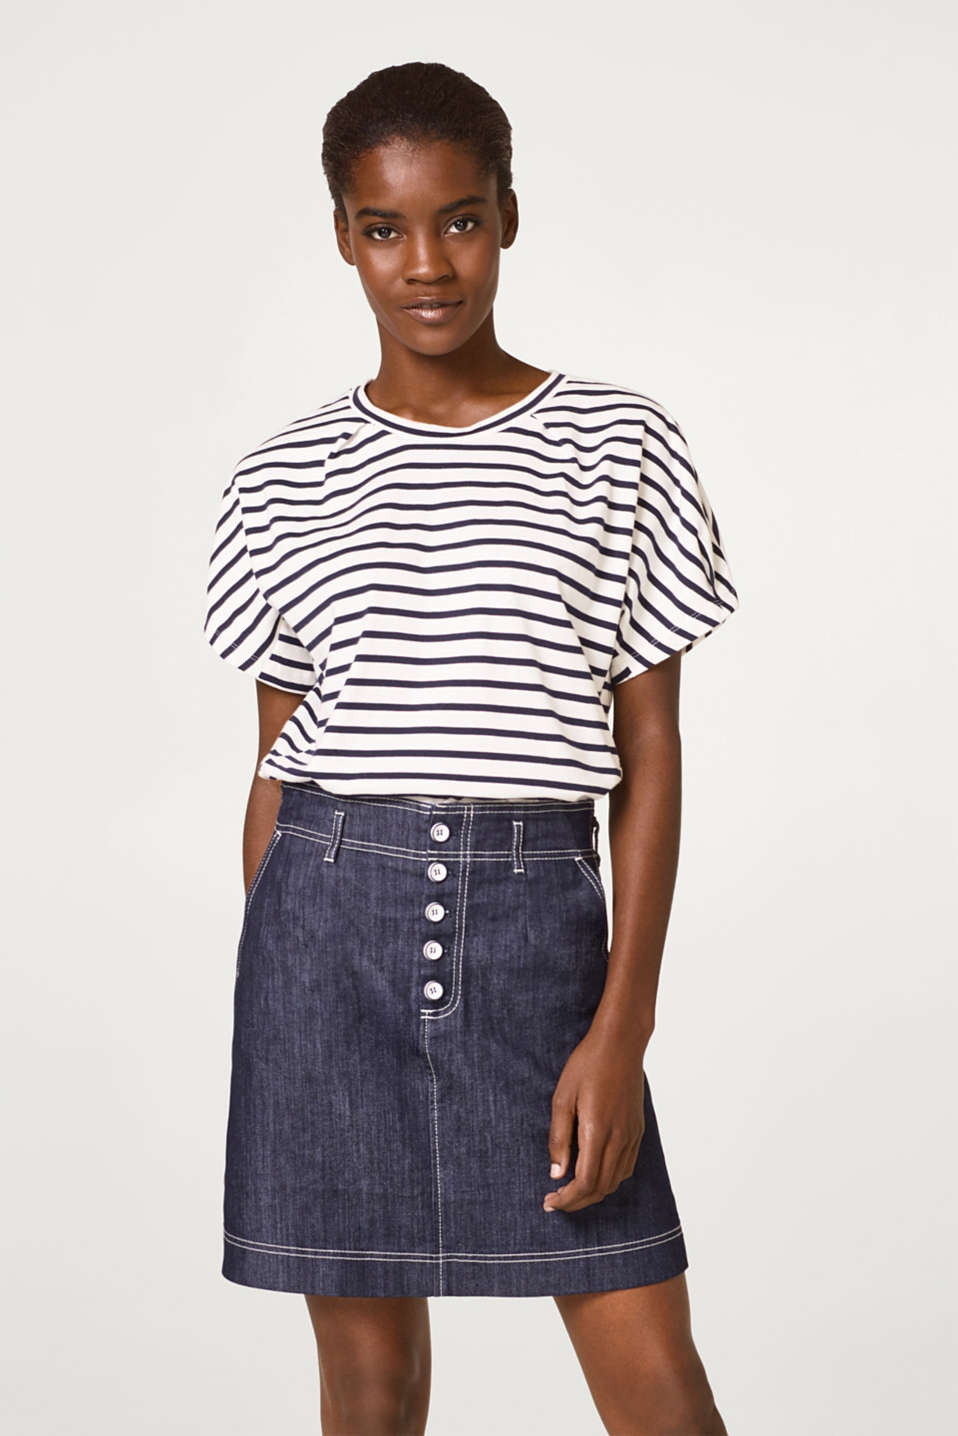 Esprit - Striped T-shirt with pleat details, 100% cotton